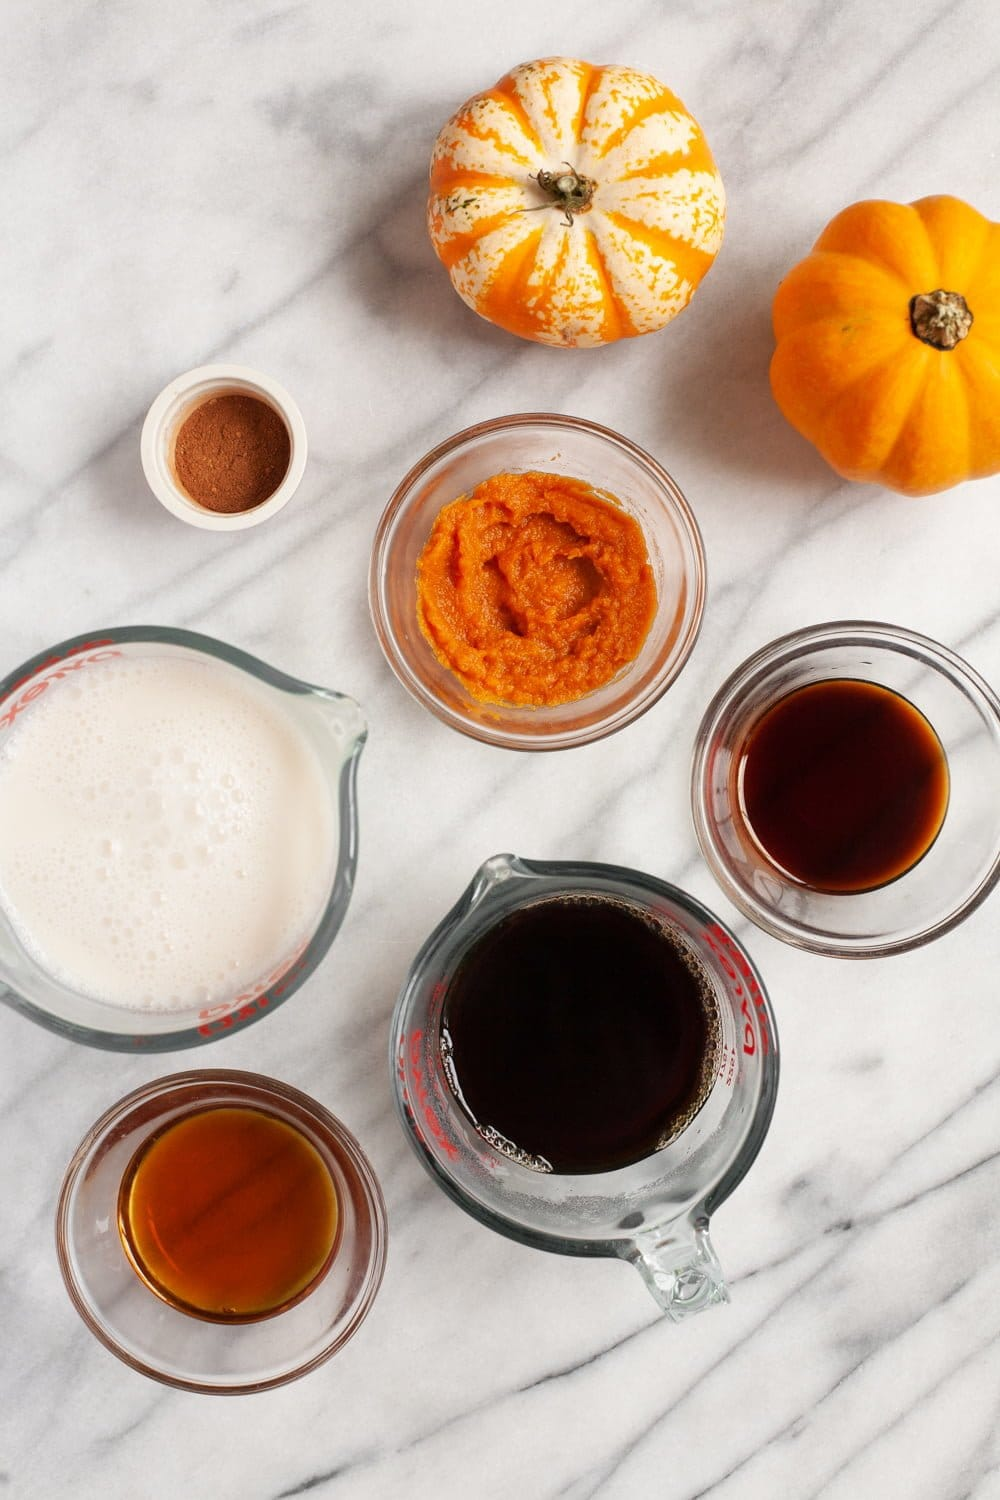 Ingredients for Vegan Pumpkin Spice Latte in glass containers - pumpkin, coffee, maple syrup, almond milk, vanilla extract